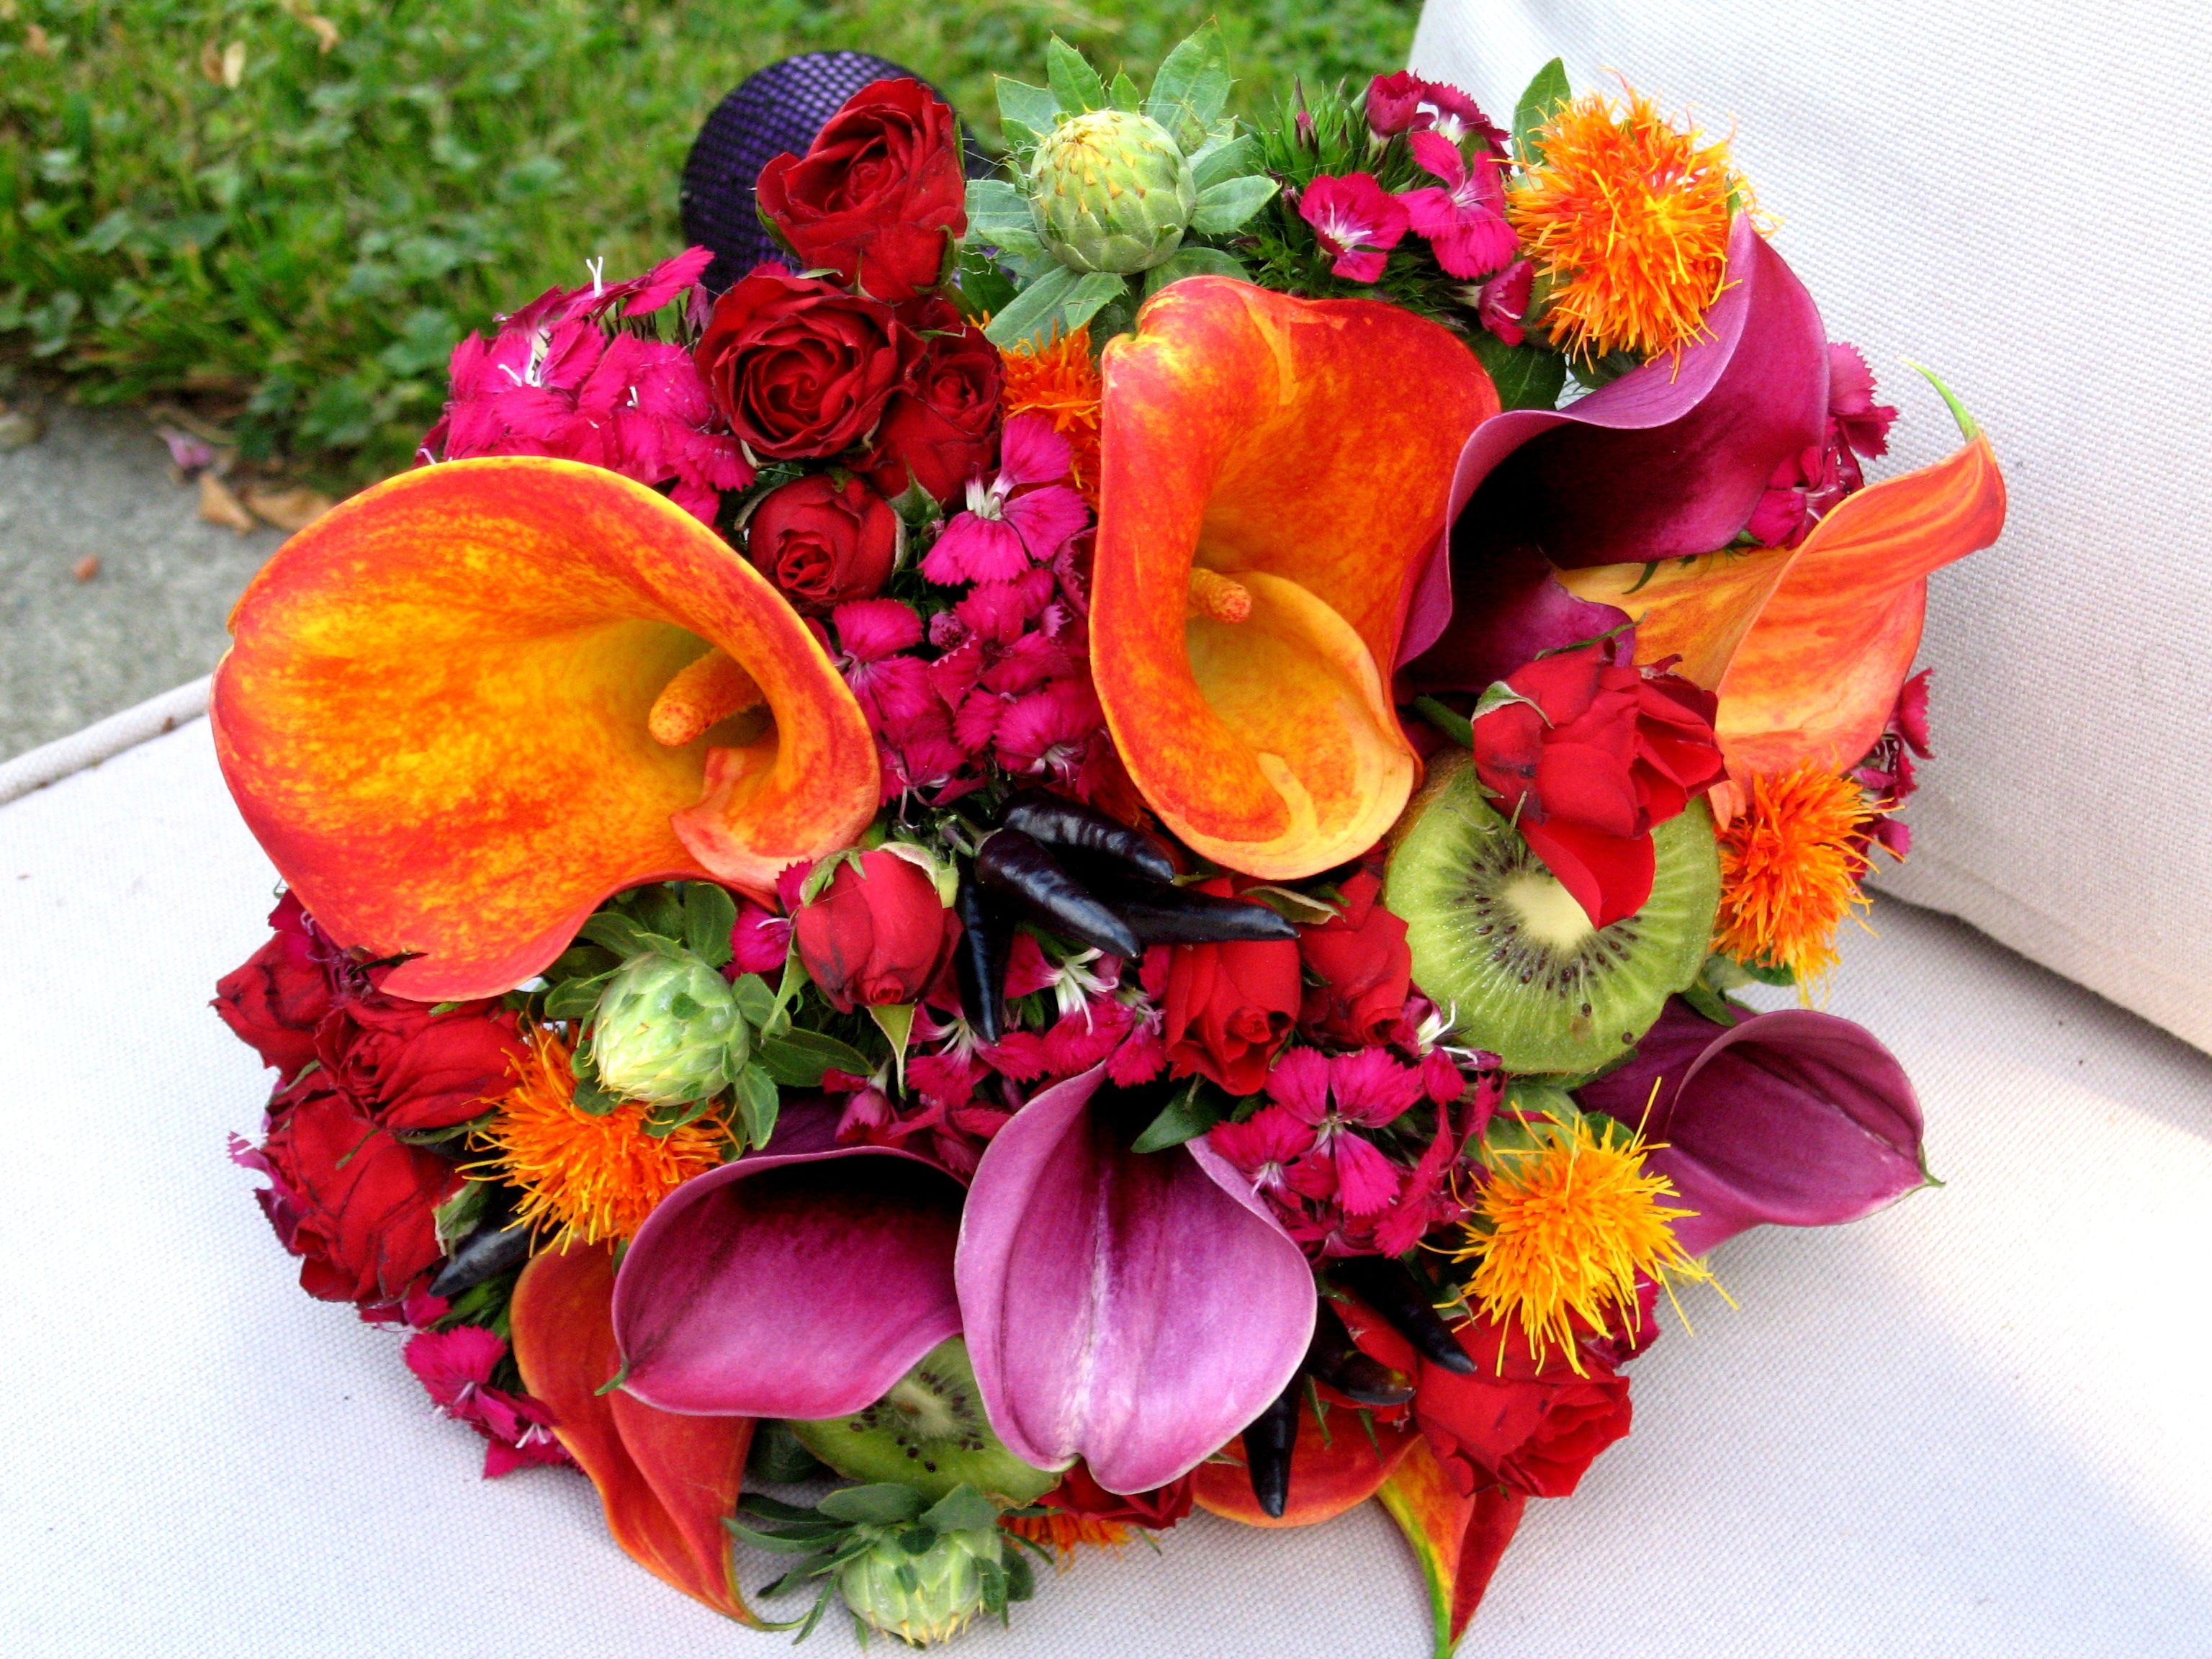 Spicy bouquet with hot peppers, kiwi and wrapped in fish net stockings  Designed by Flowers by Antonella